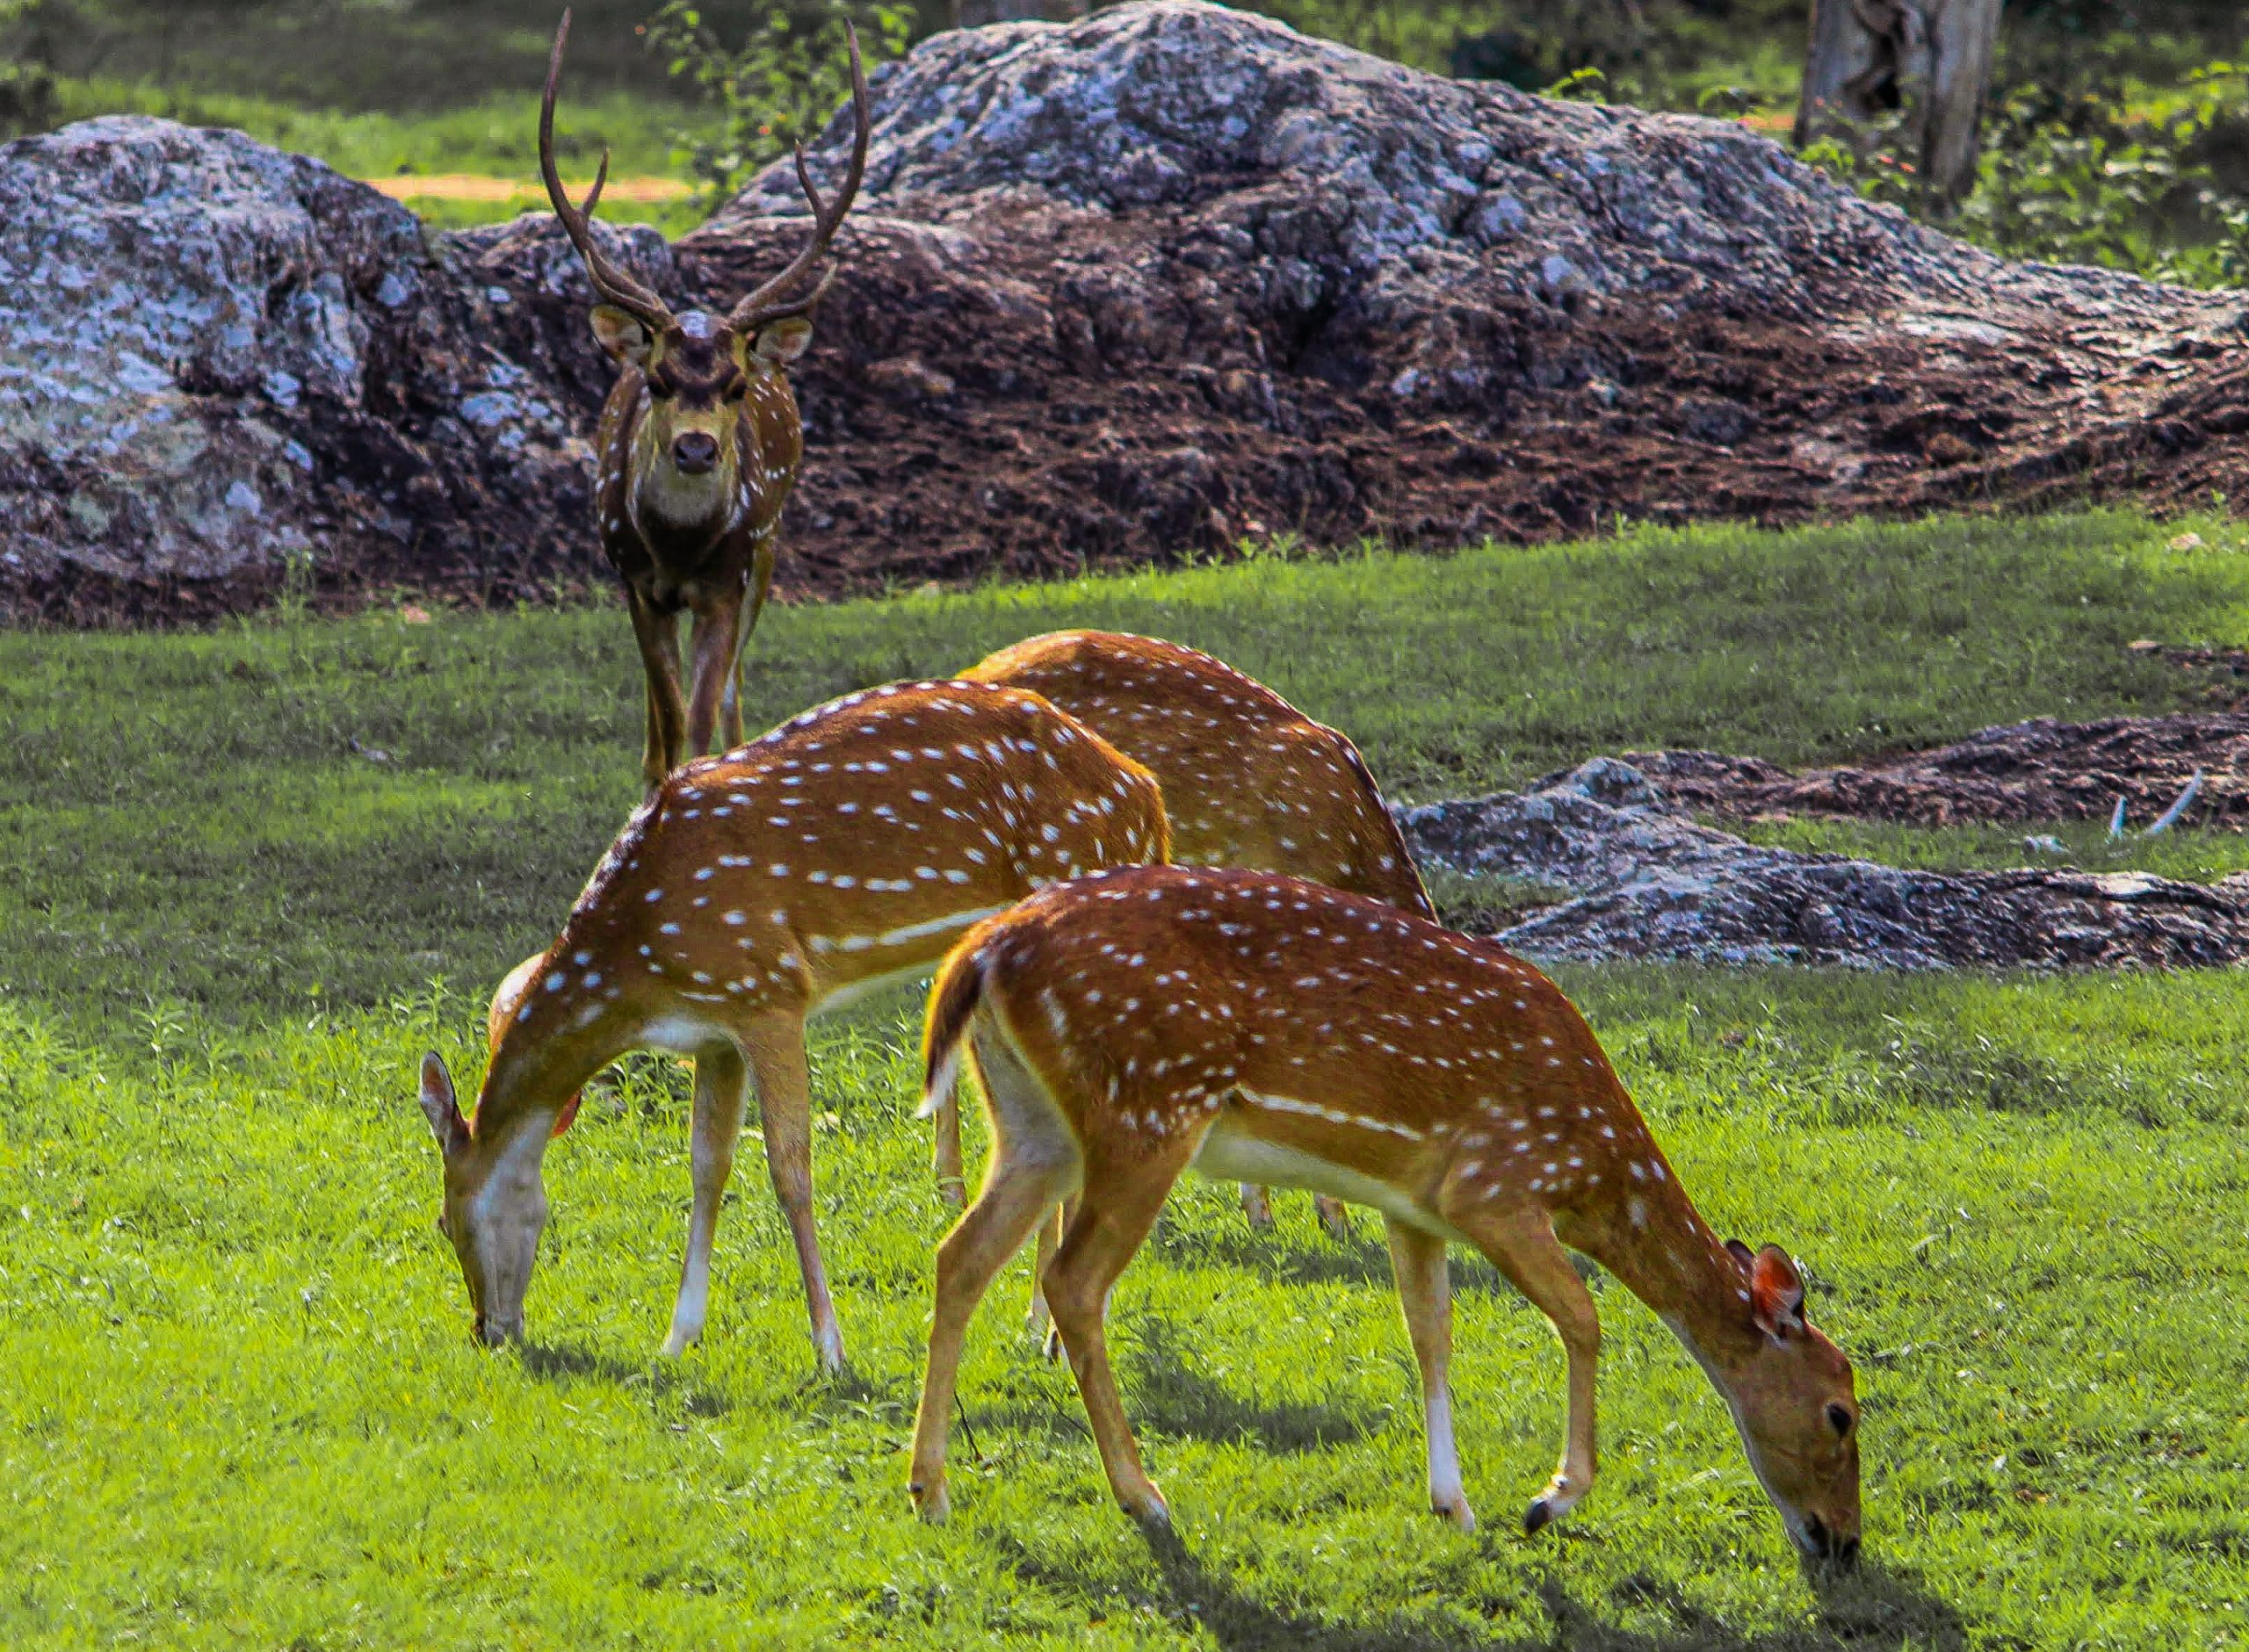 A herd of spotted deer in a jungle